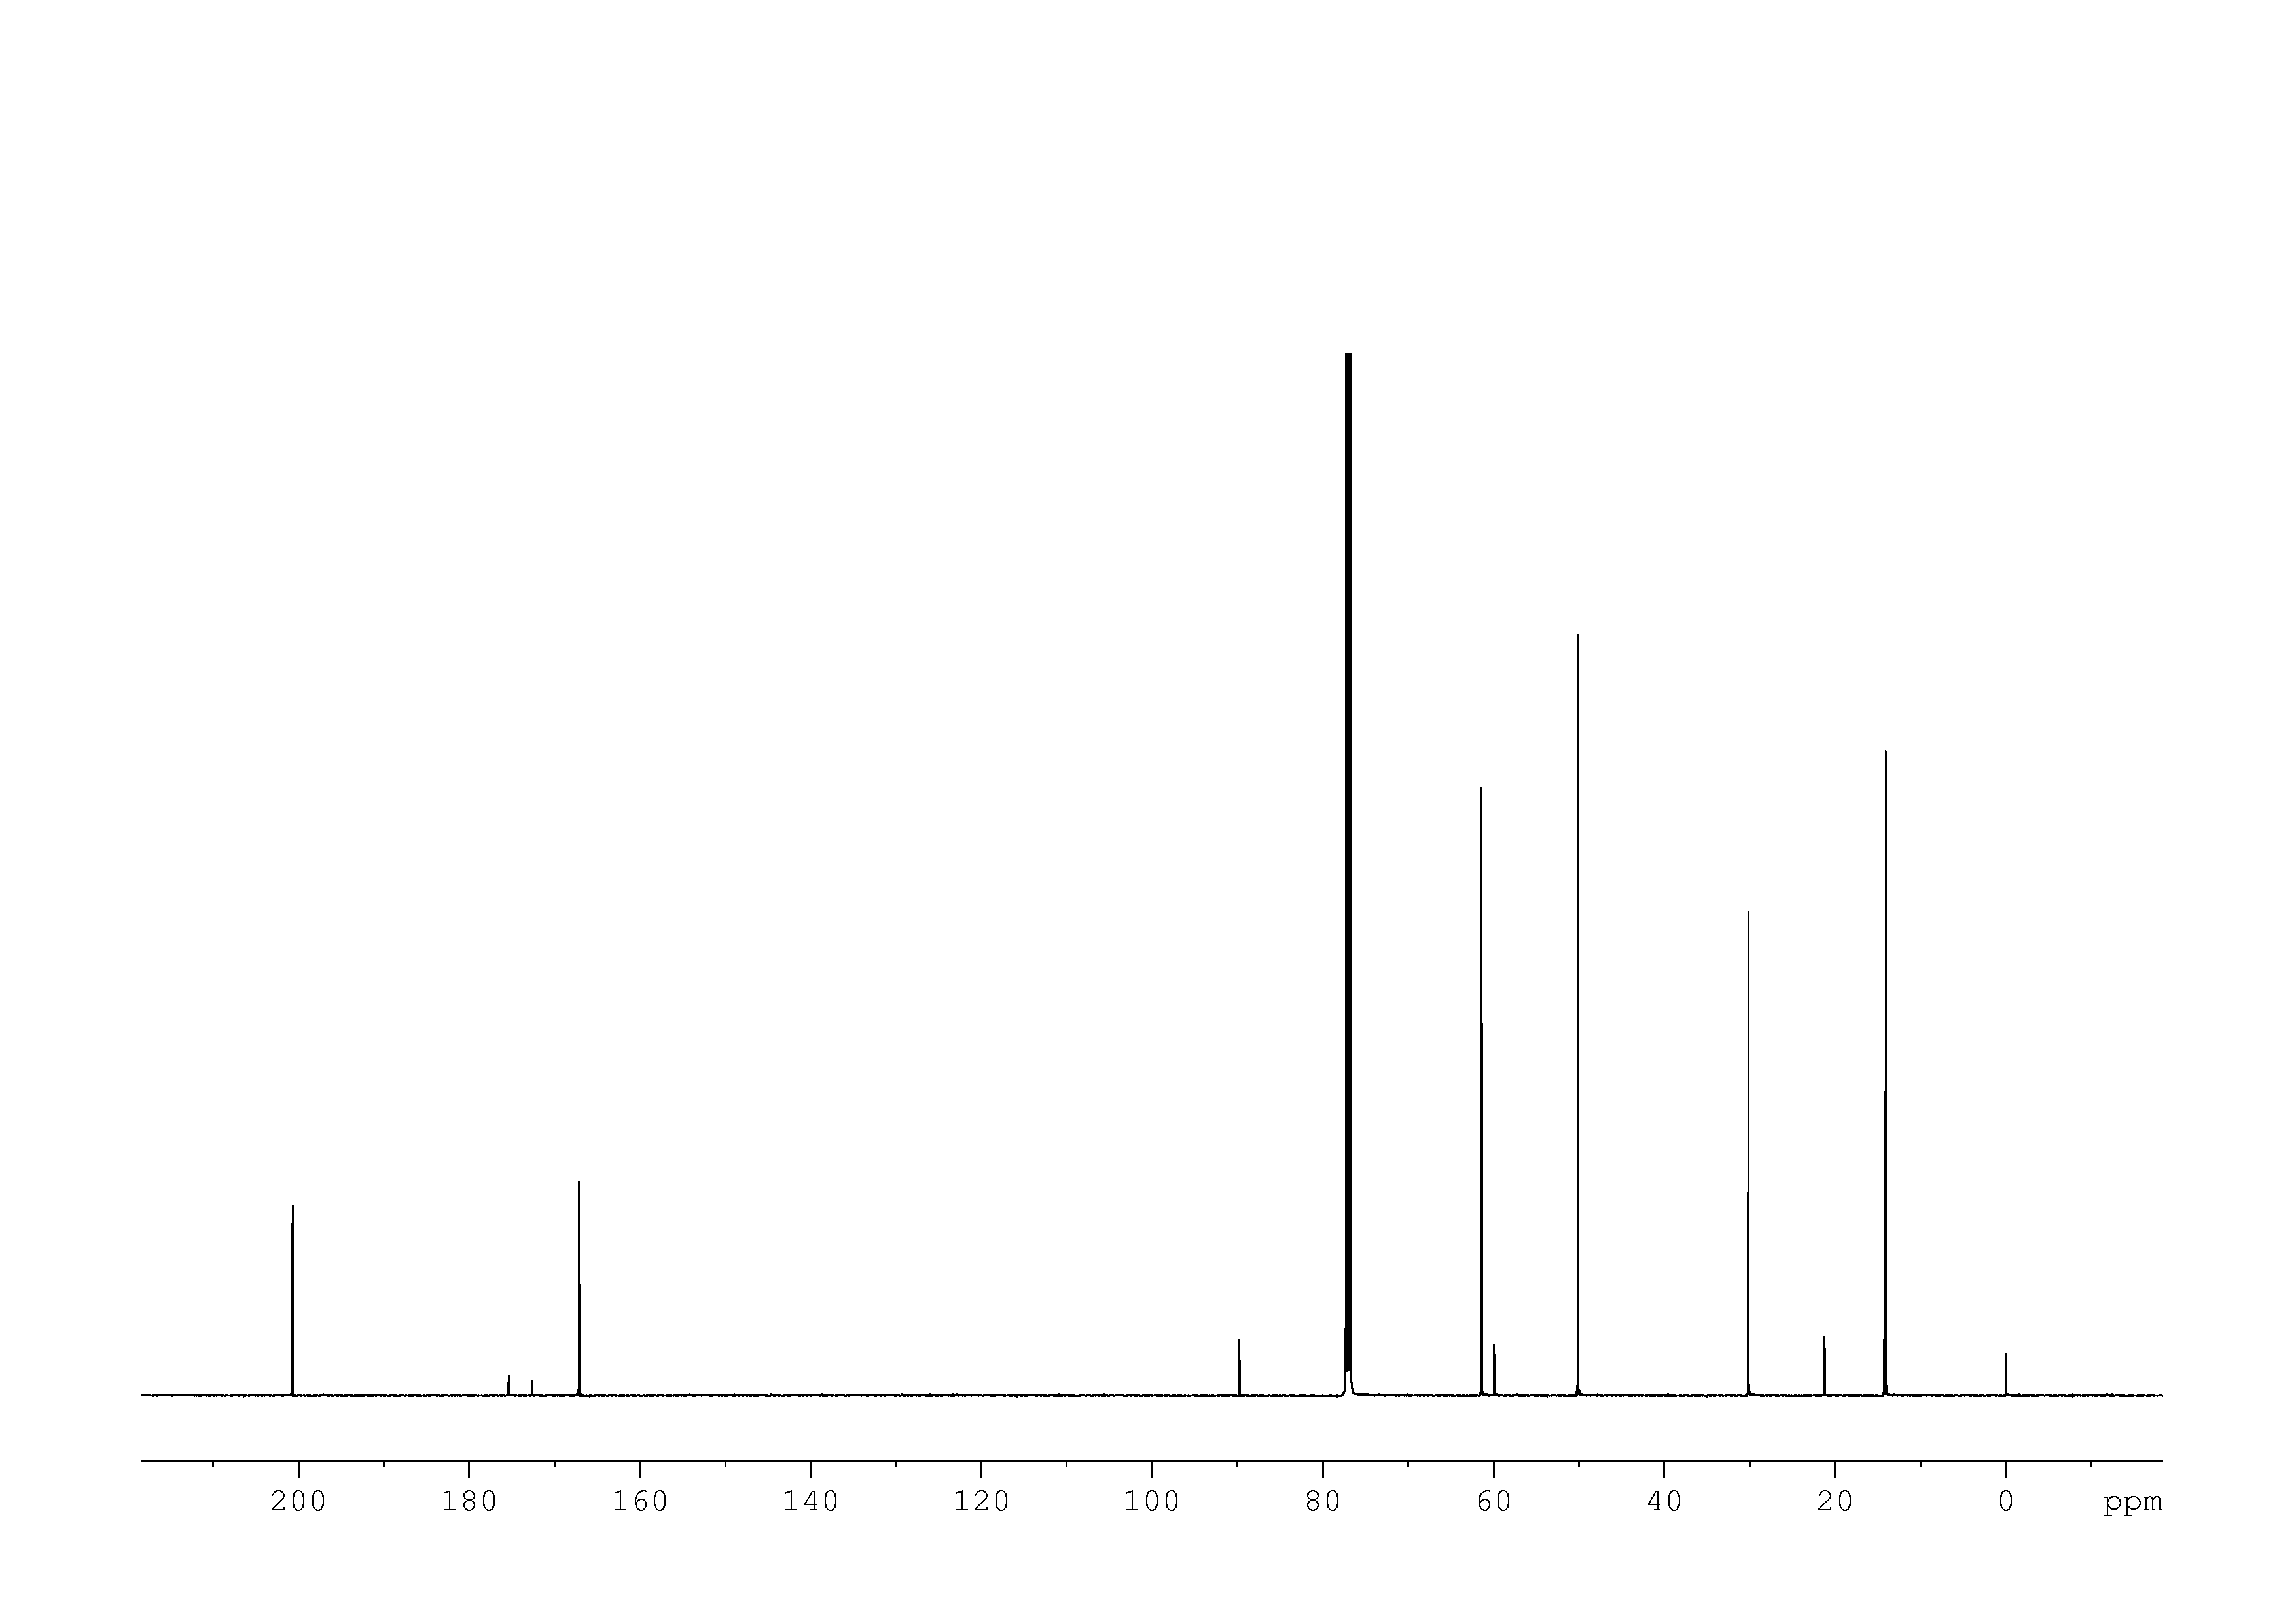 1D 13C, n/a spectrum for Ethyl acetoacetate